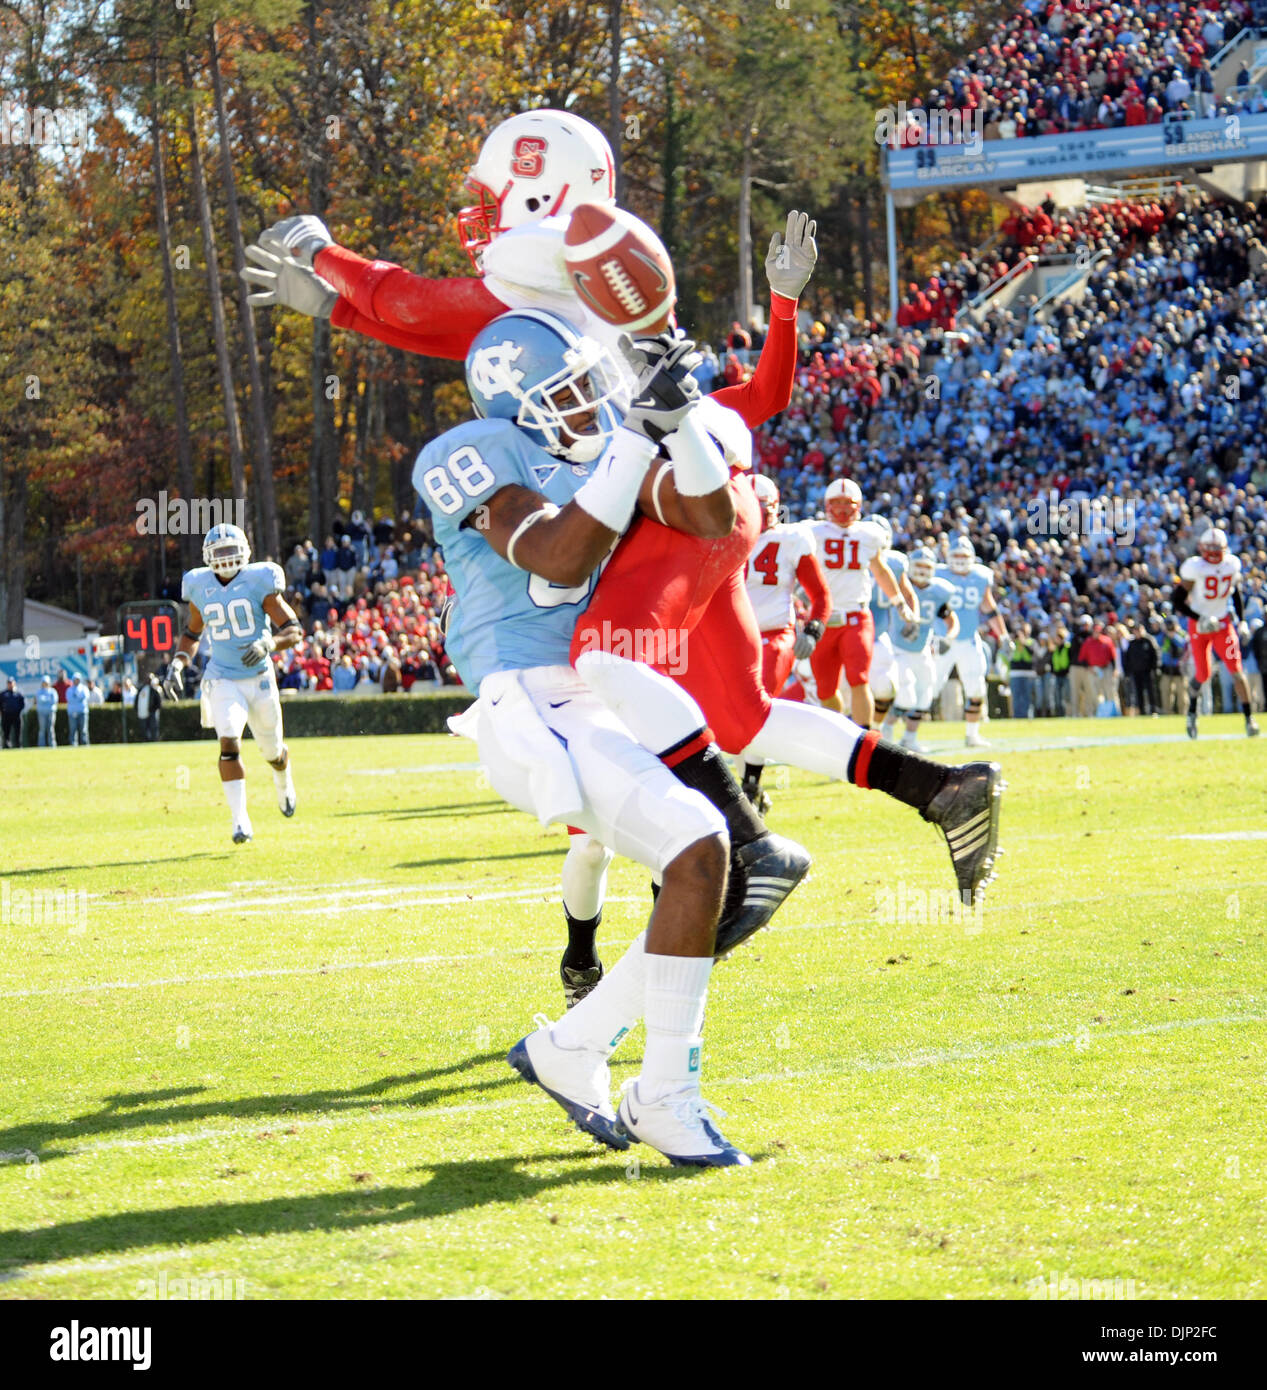 Nov 22, 2008 - Chapel Hill, North Carolina, USA - NCAA Football: Carolina Tarheels (88) HAKEEM HICKS attempt to catch a pass as North Carolina State Wolfpack (19) CLEM JOHNSON tries to intercept to pass as the North Carolina State Wolfpack defeat the University of North Carolina Tarheels with a final score of 41-10 as they play mens college football at Kenan Stadium located in Chap - Stock Image